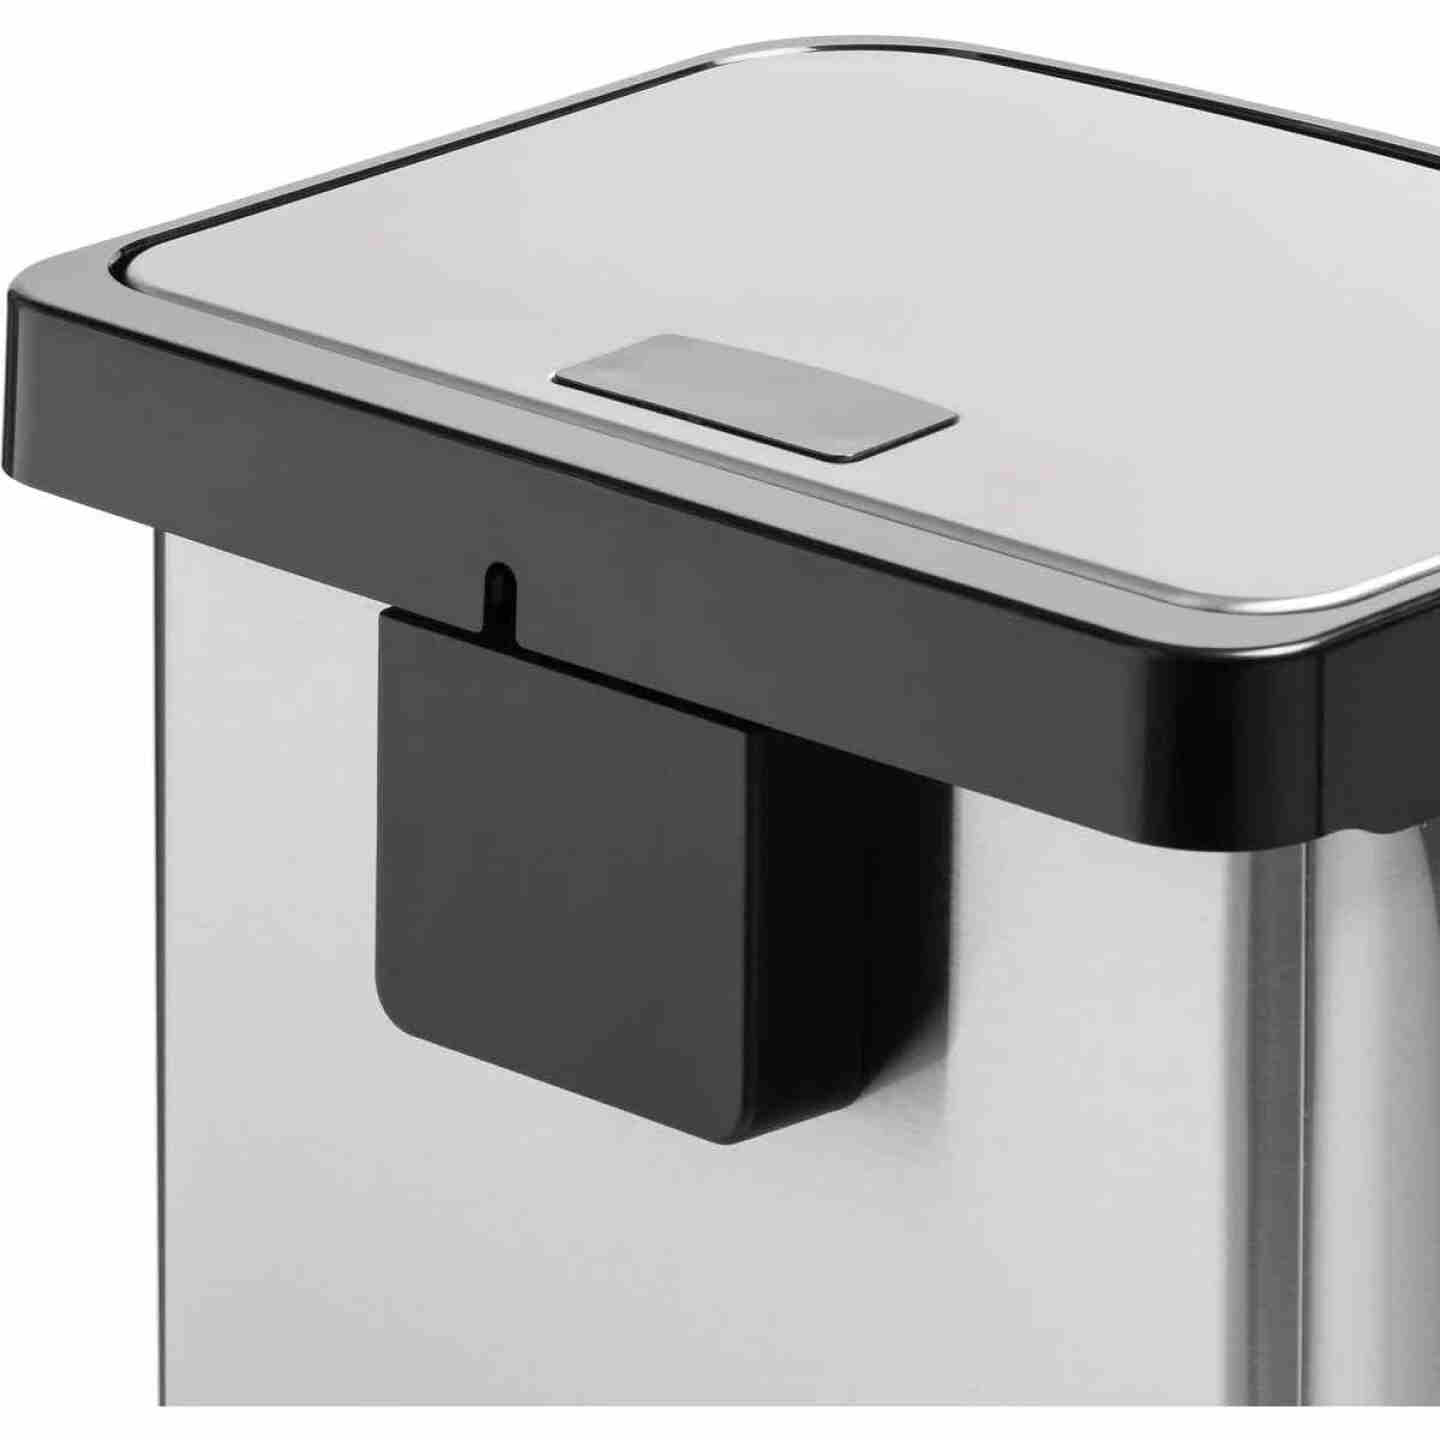 Honey Can Do 50L Stainless Steel Wastebasket Image 6